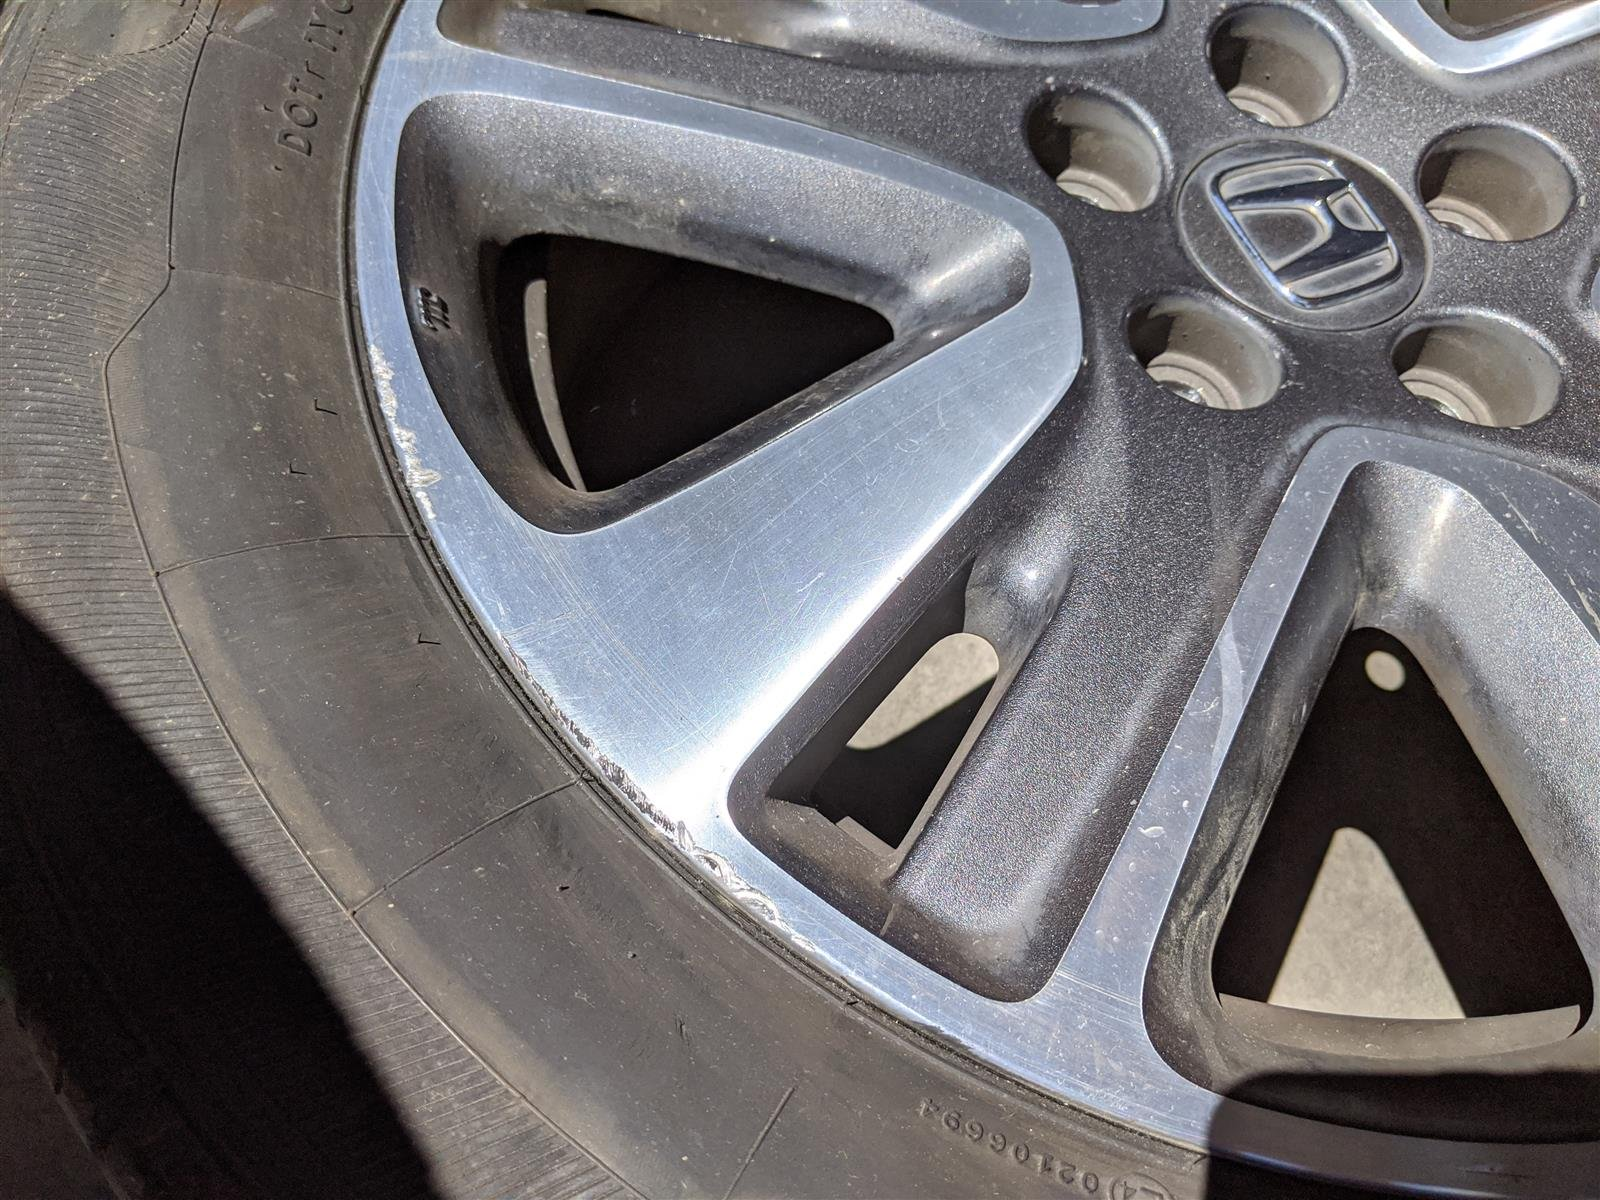 2014 Honda Odyssey Rear Driver 18 Inch Rim, Small Curb Replacement